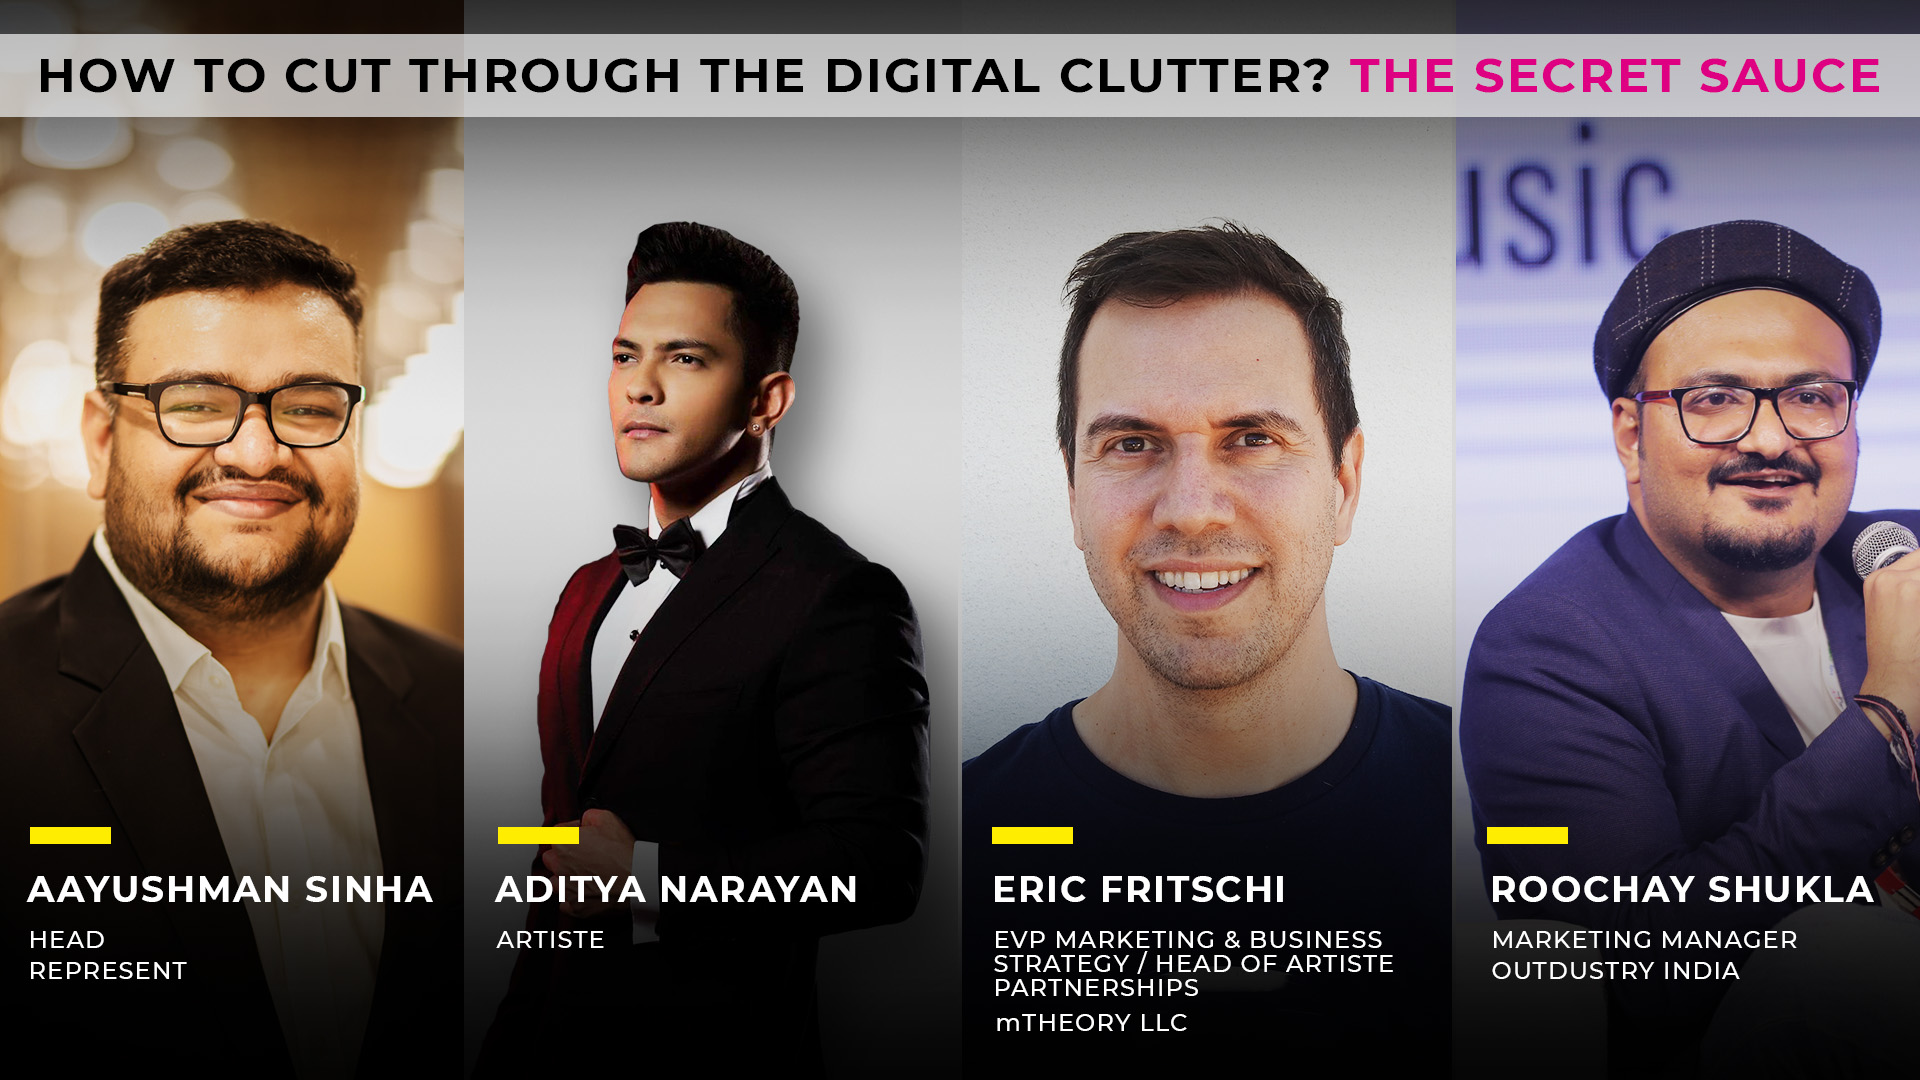 4th AAM Digital Session supported by Music Plus - Discussion with Ayushman Sinha,artist Aditya Narayan, Eric Fritschi, Roochay Shukla